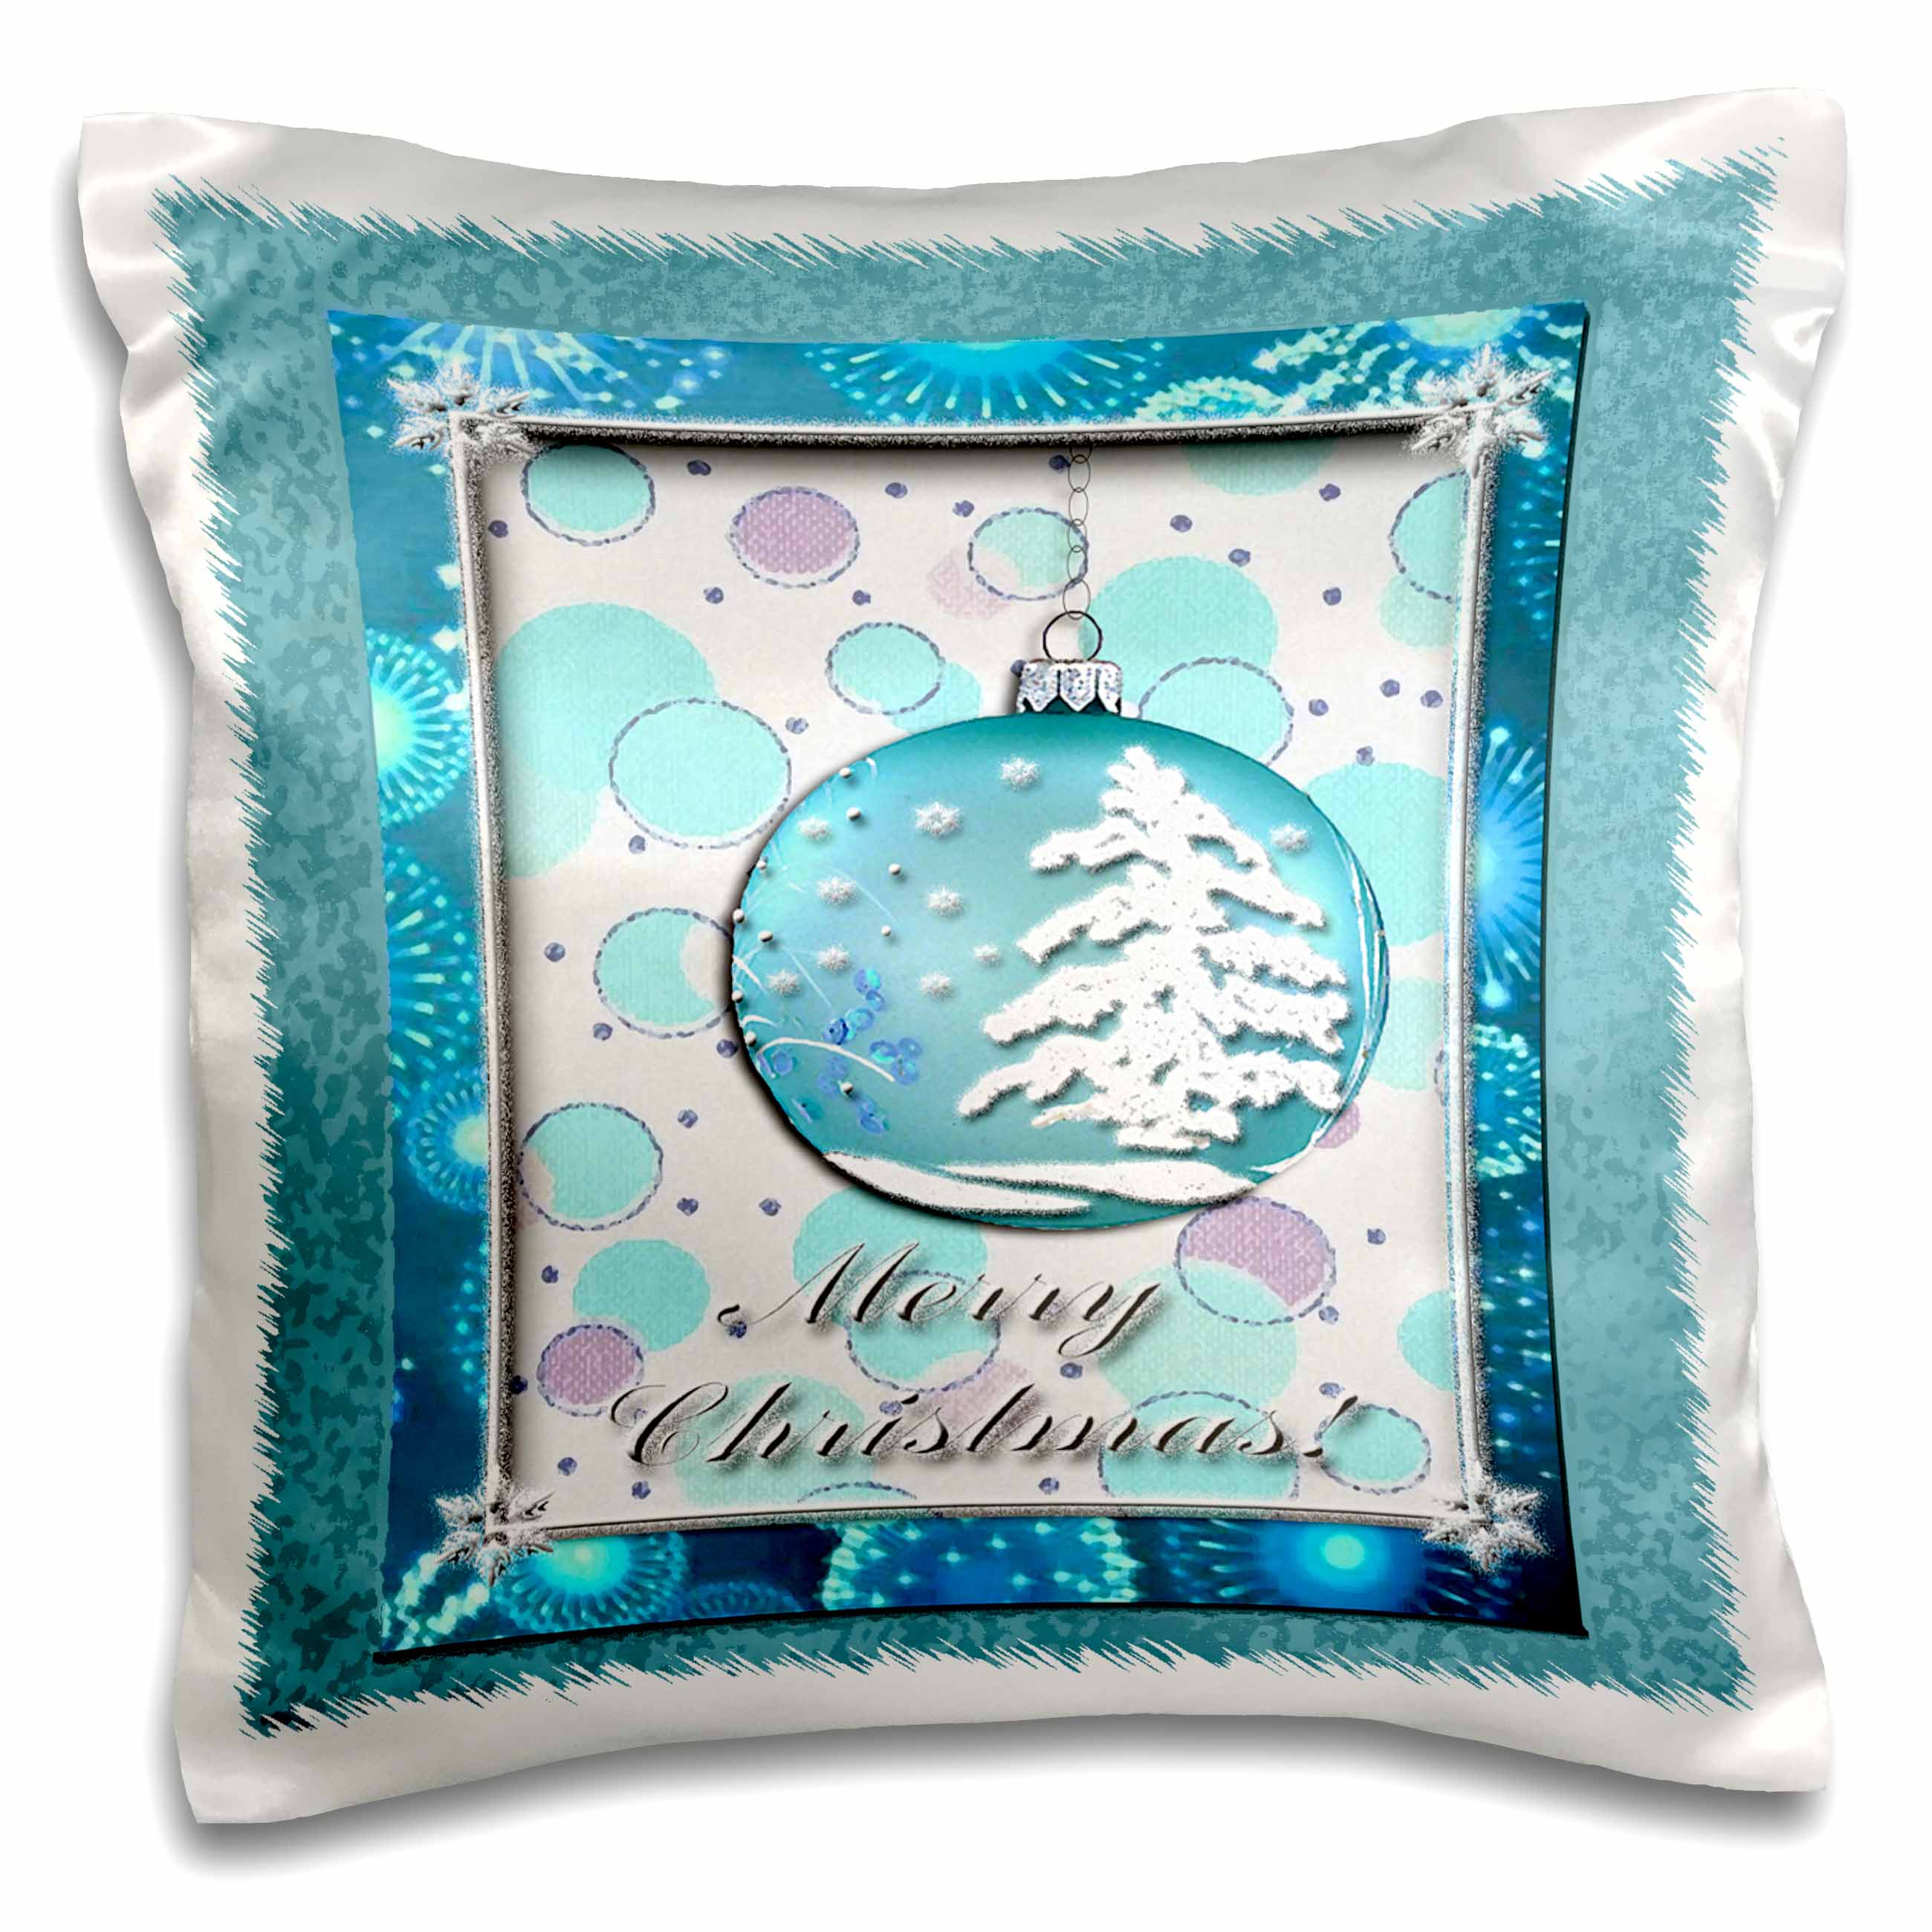 3dRose Aqua Snow Tree Ornament Merry Christmas, Pillow Case, 16 by 16-inch